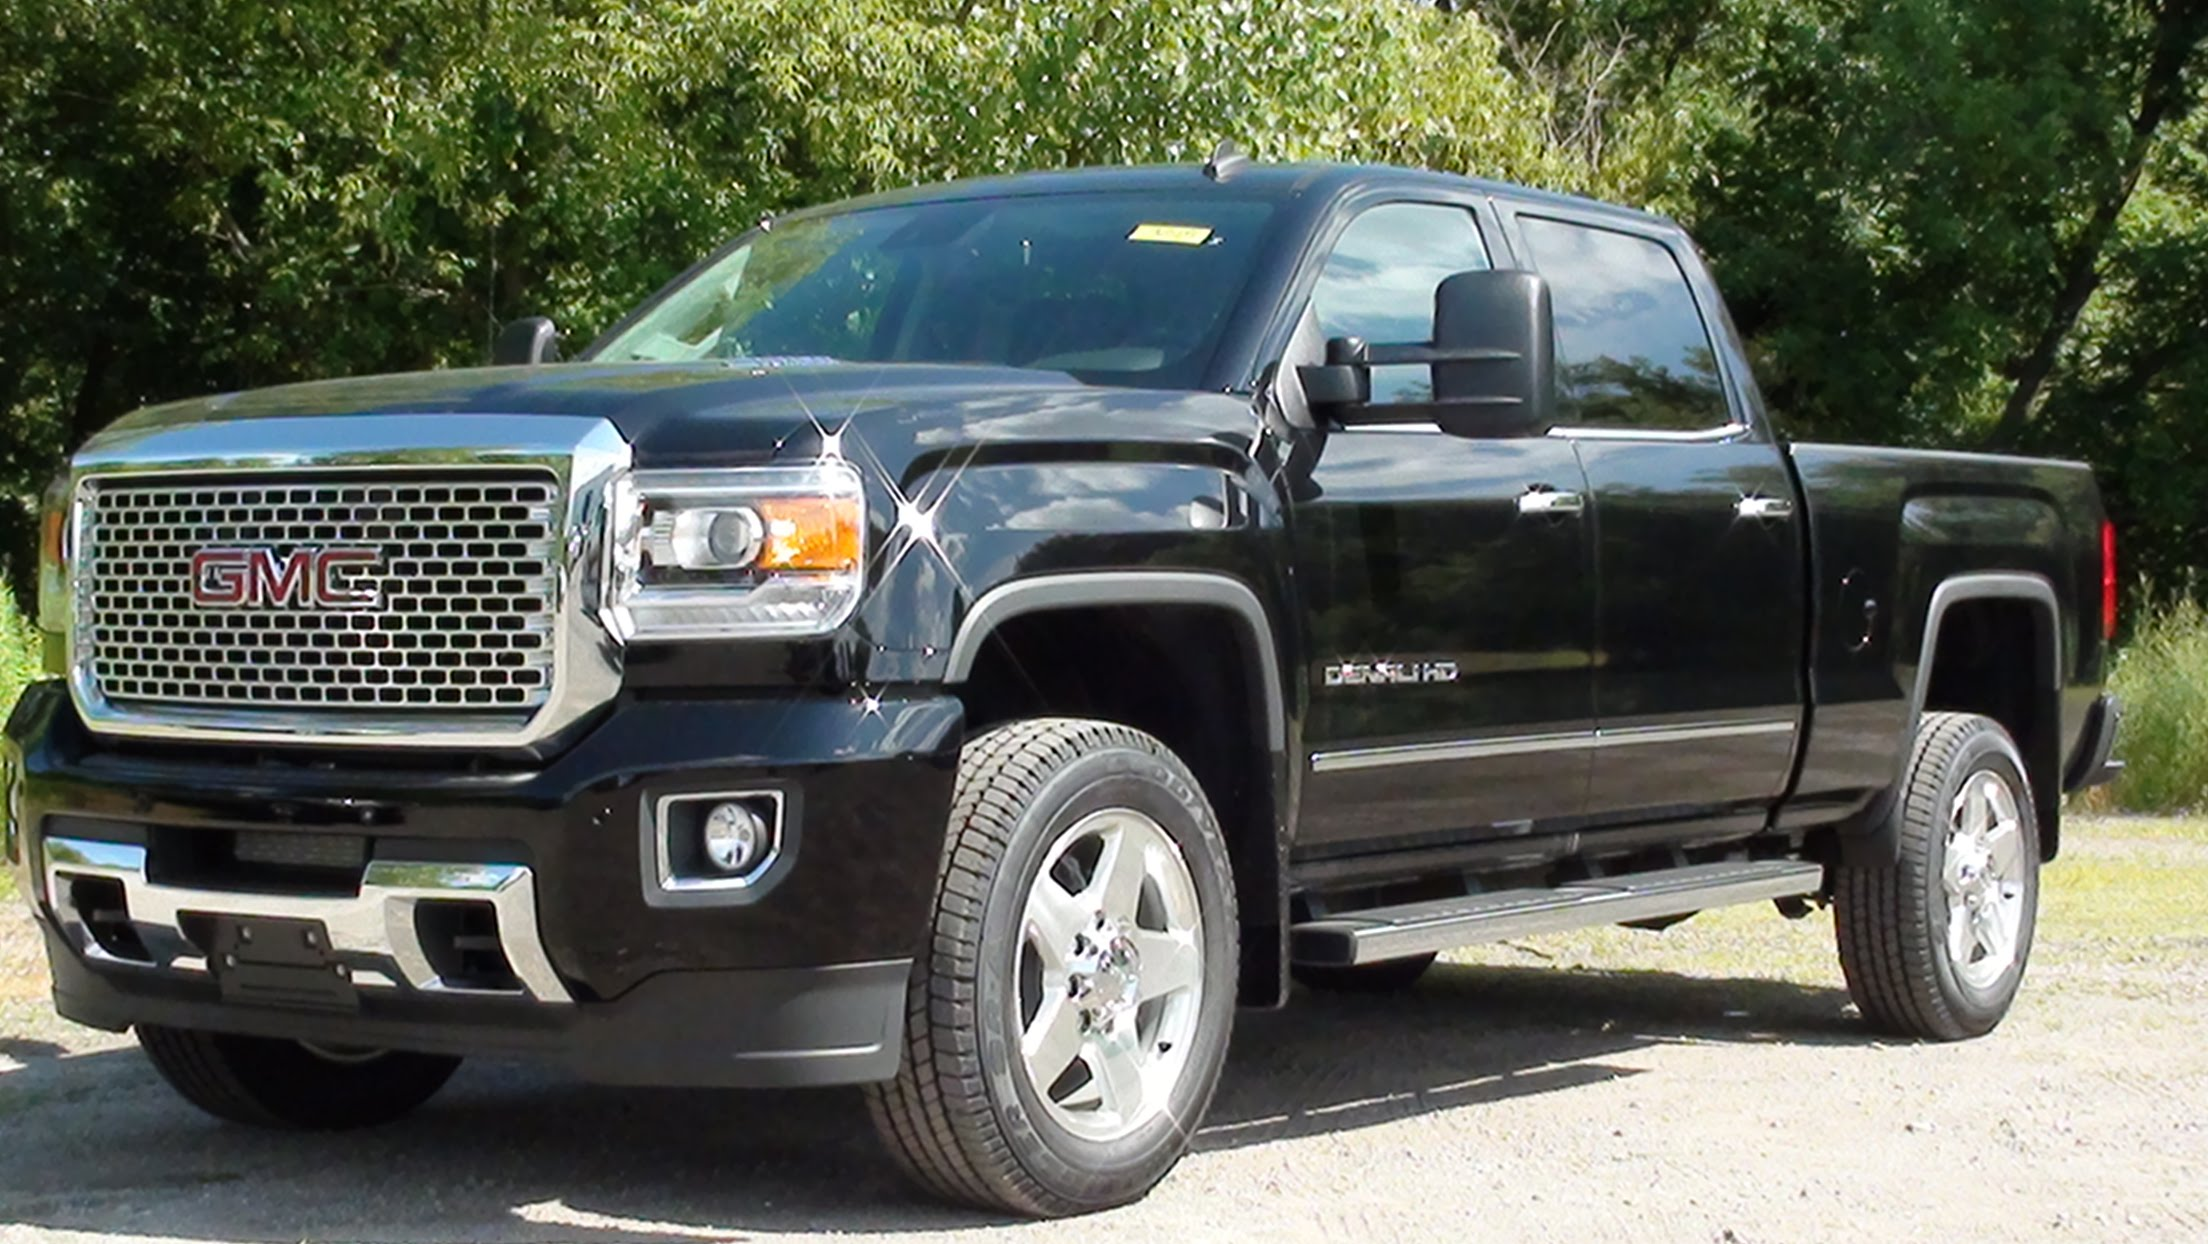 GMC Sierra 2500hd #22